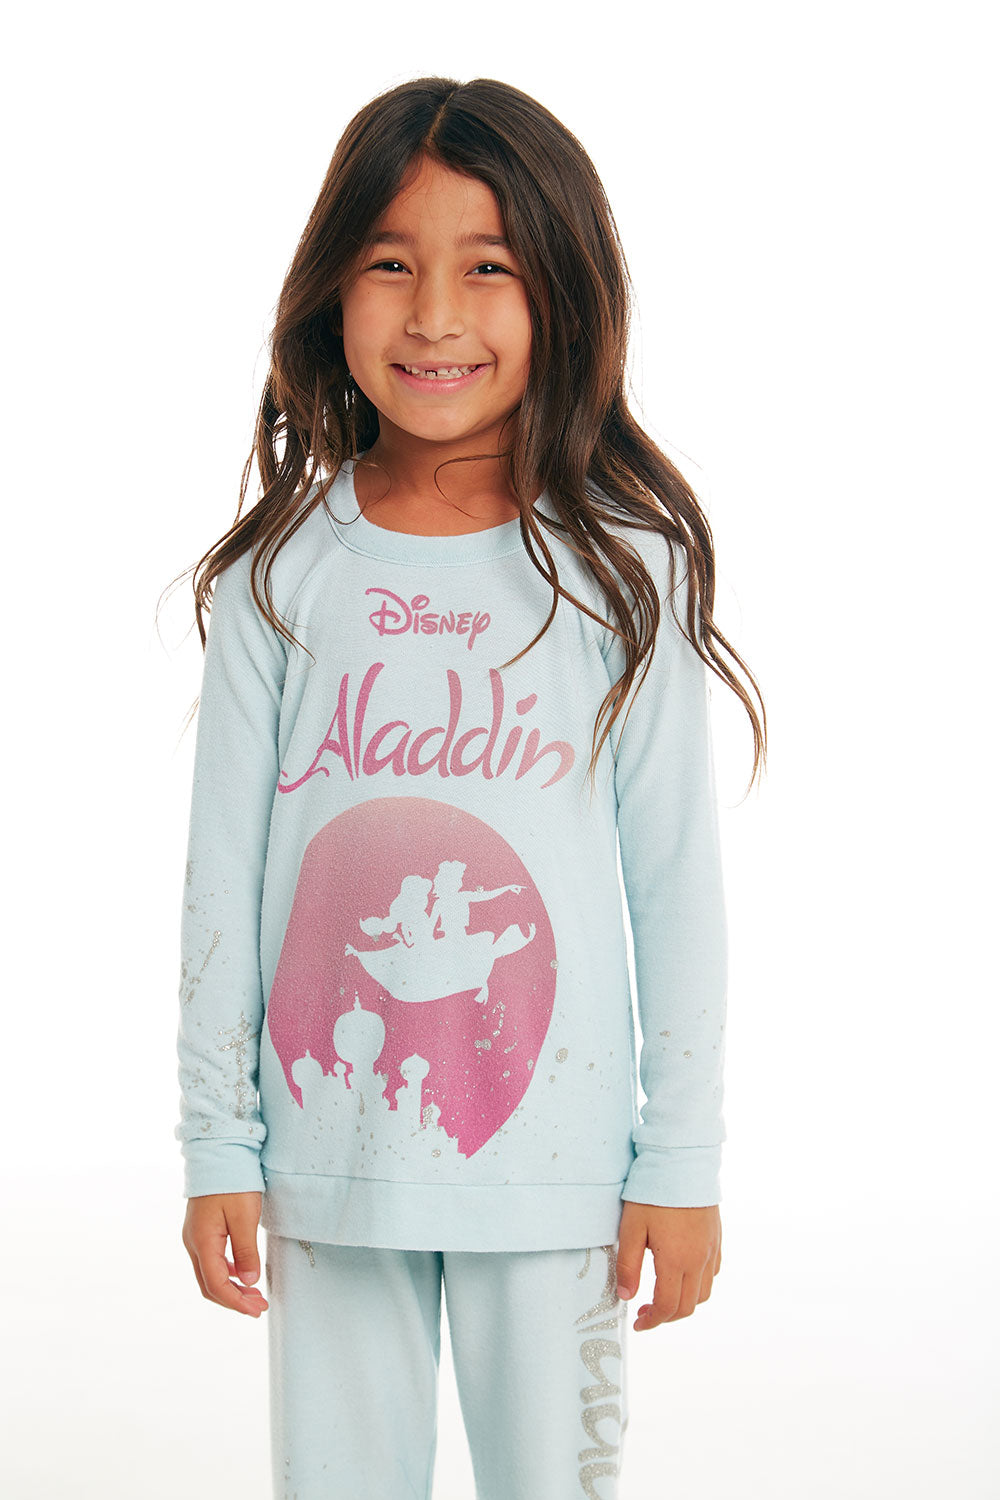 Disney Aladdin Magic Carpet, Girls, chaserbrand.com,chaser clothing,chaser apparel,chaser los angeles